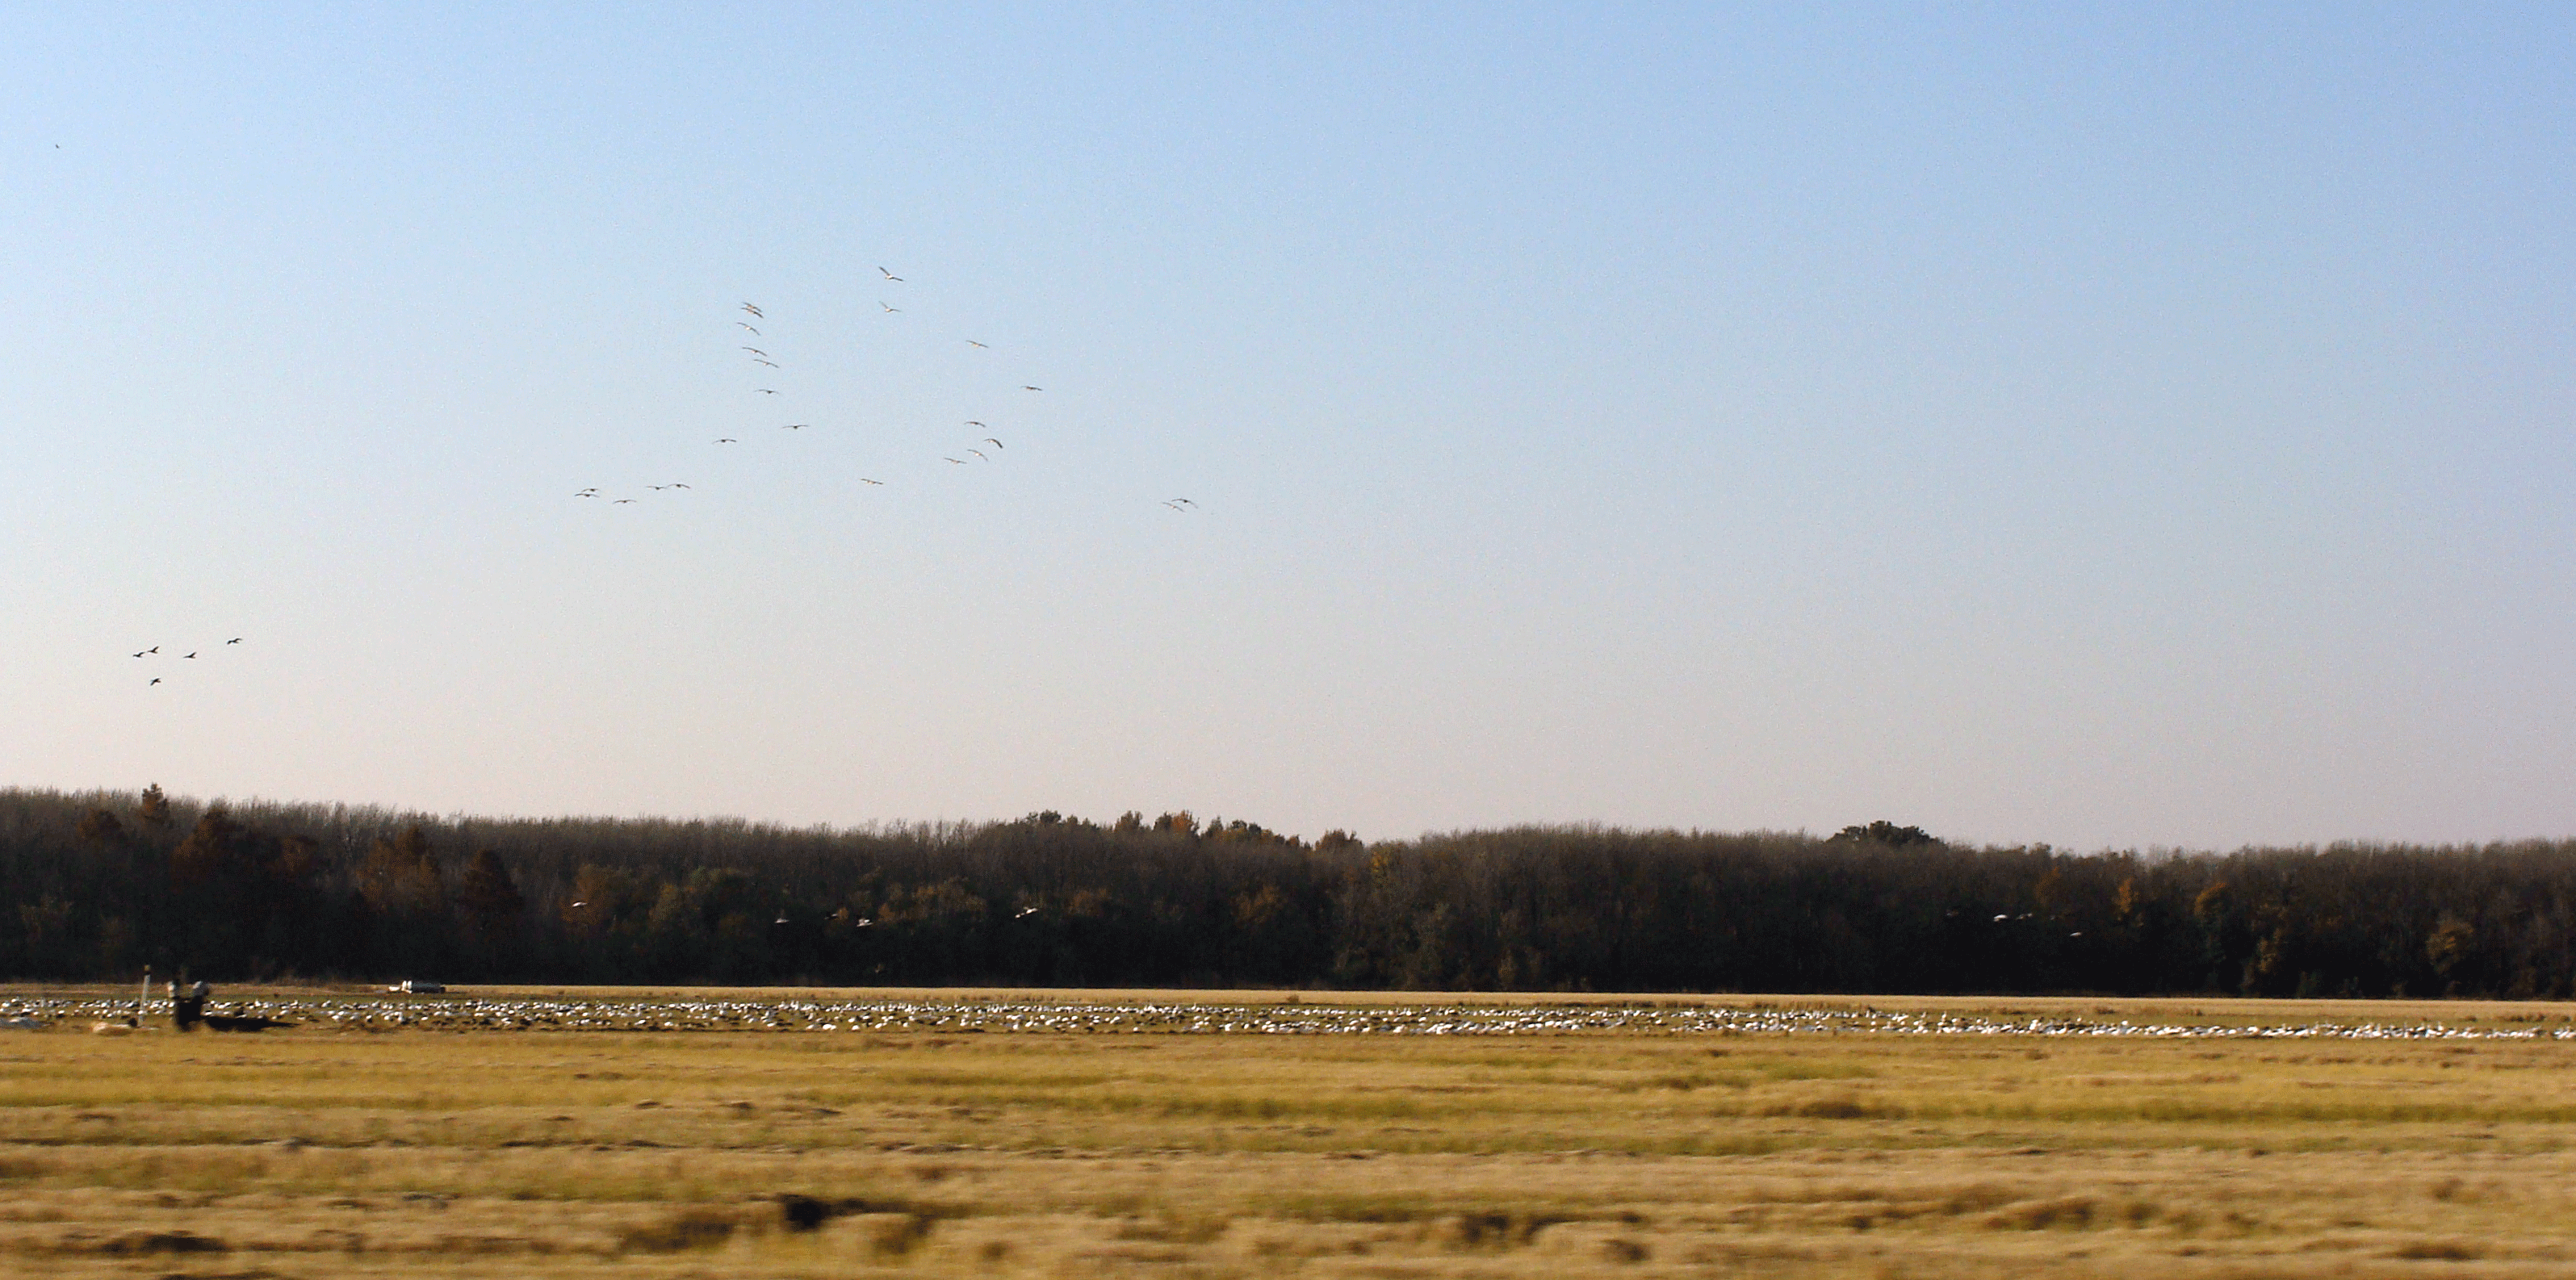 Geese in rice field.